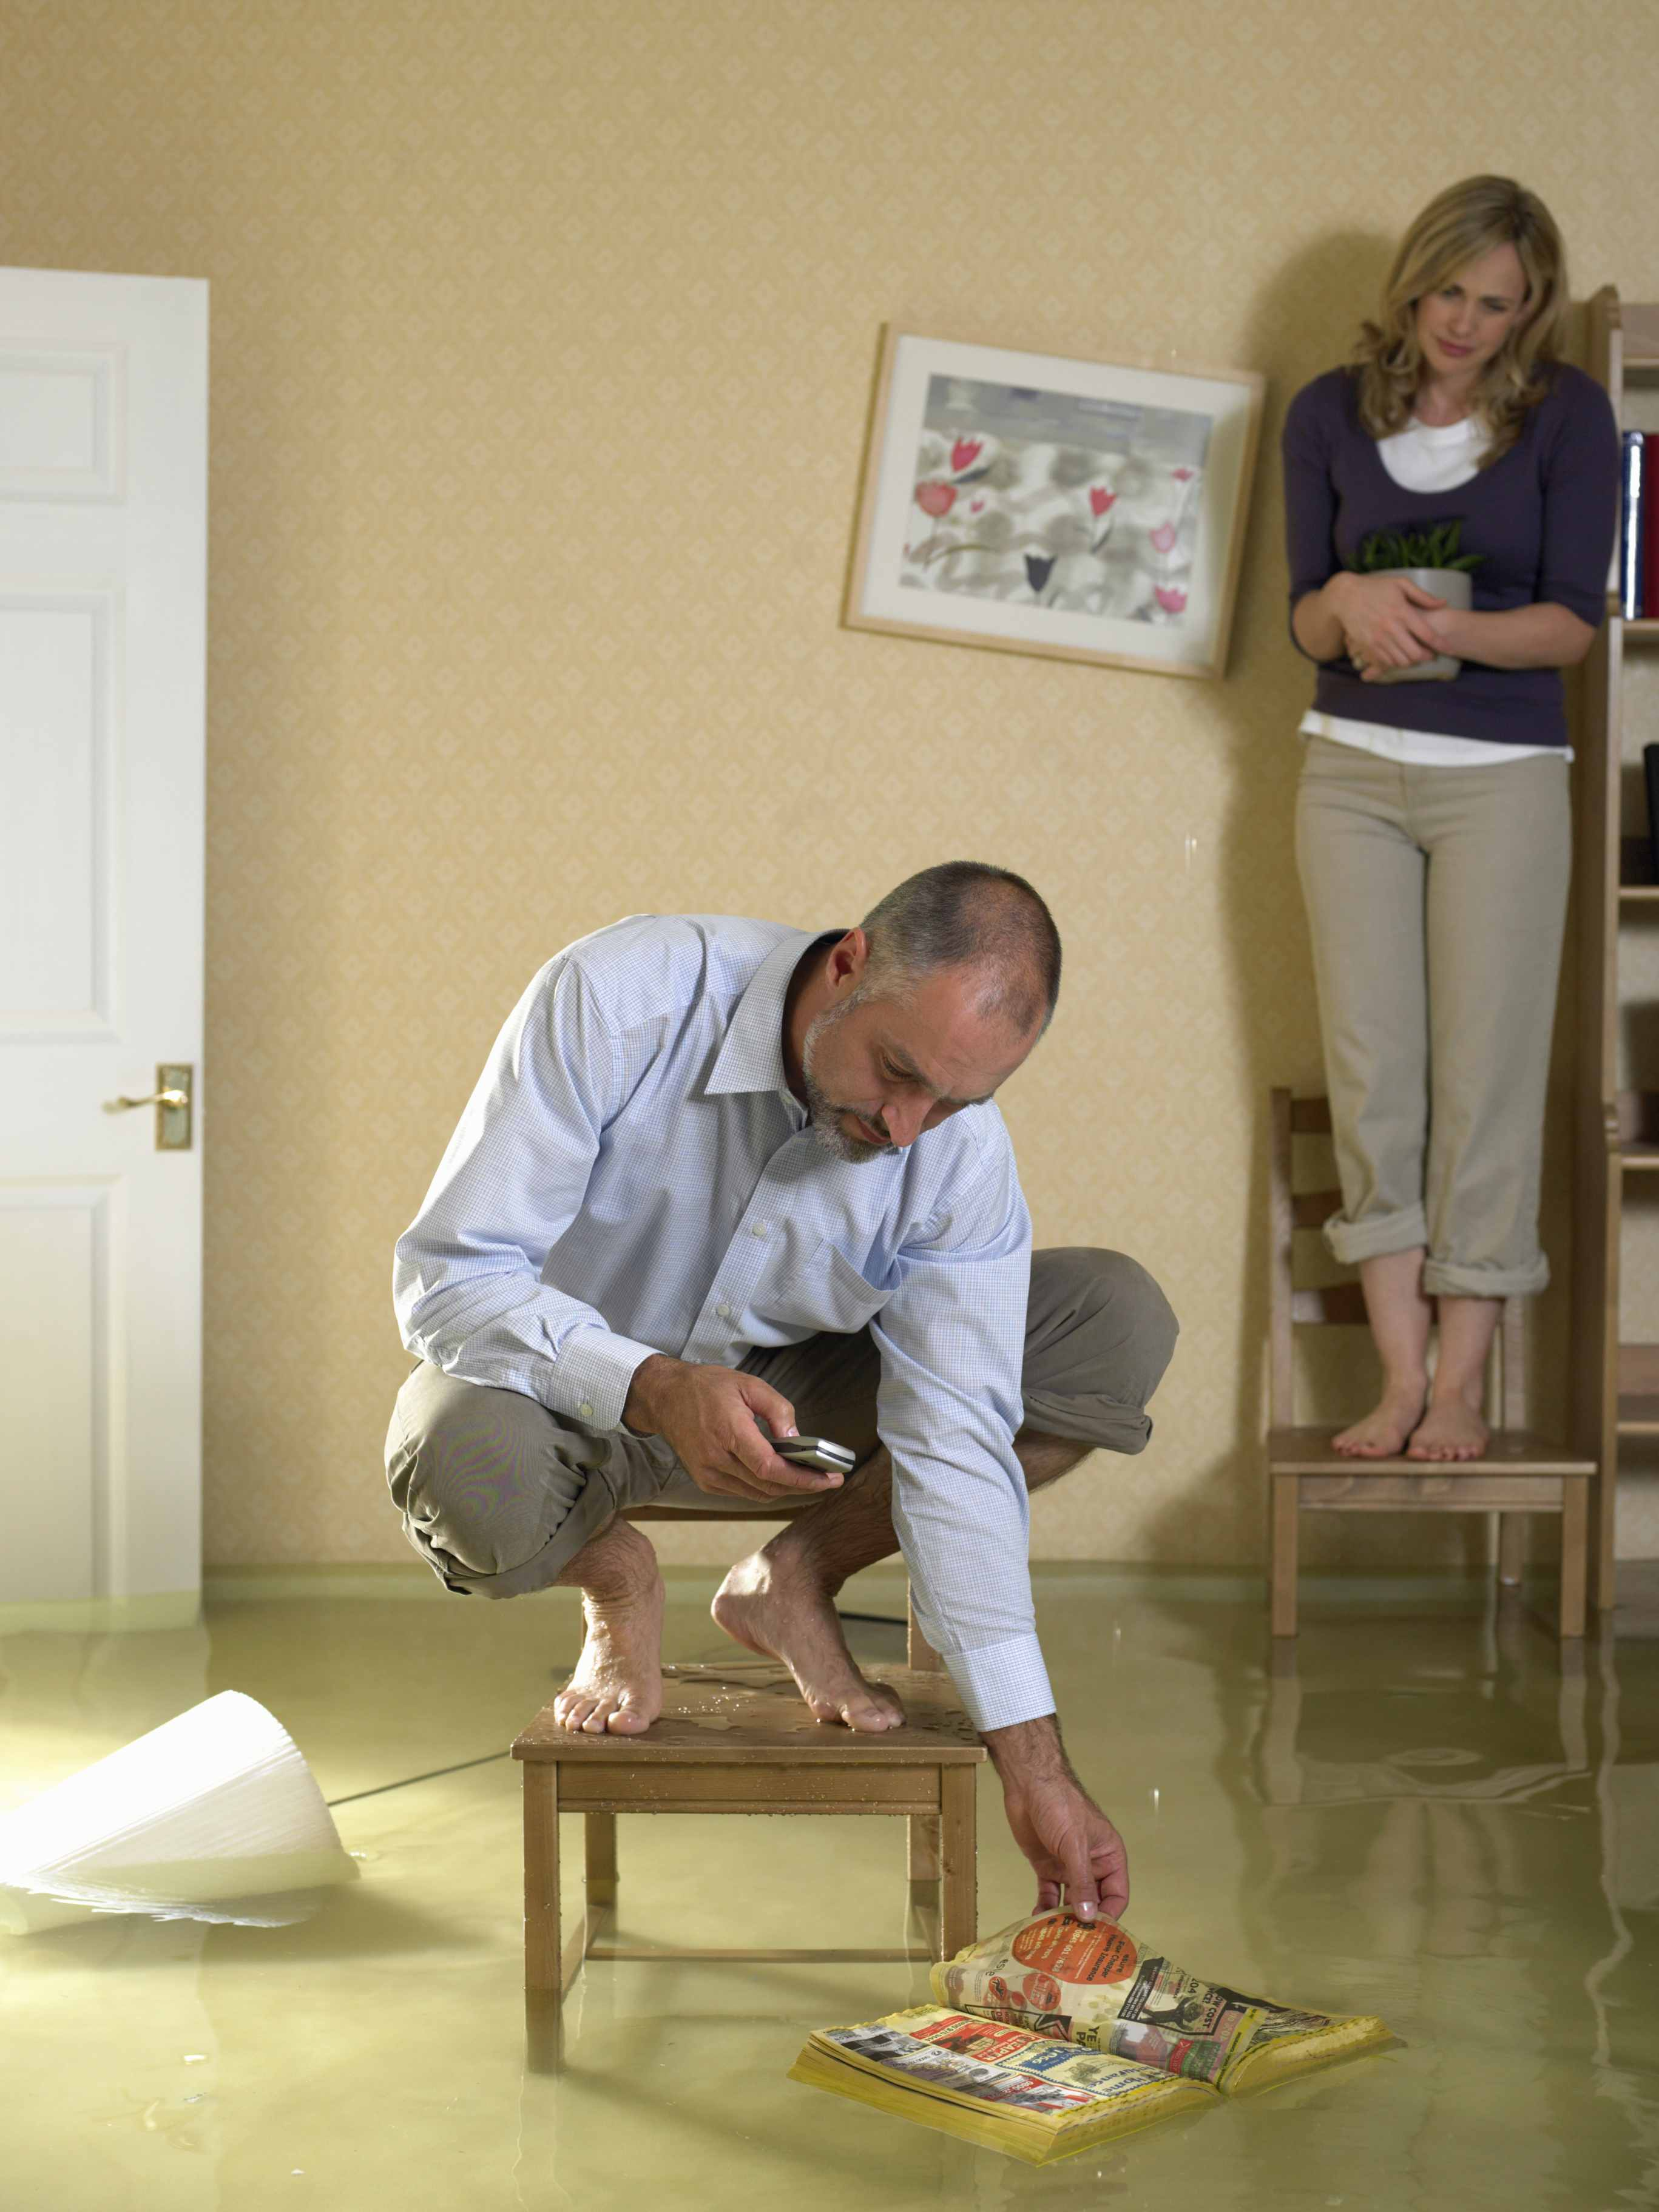 Mature man using mobile phone crouching on chair in flooded living room, mid adult woman on chair behind